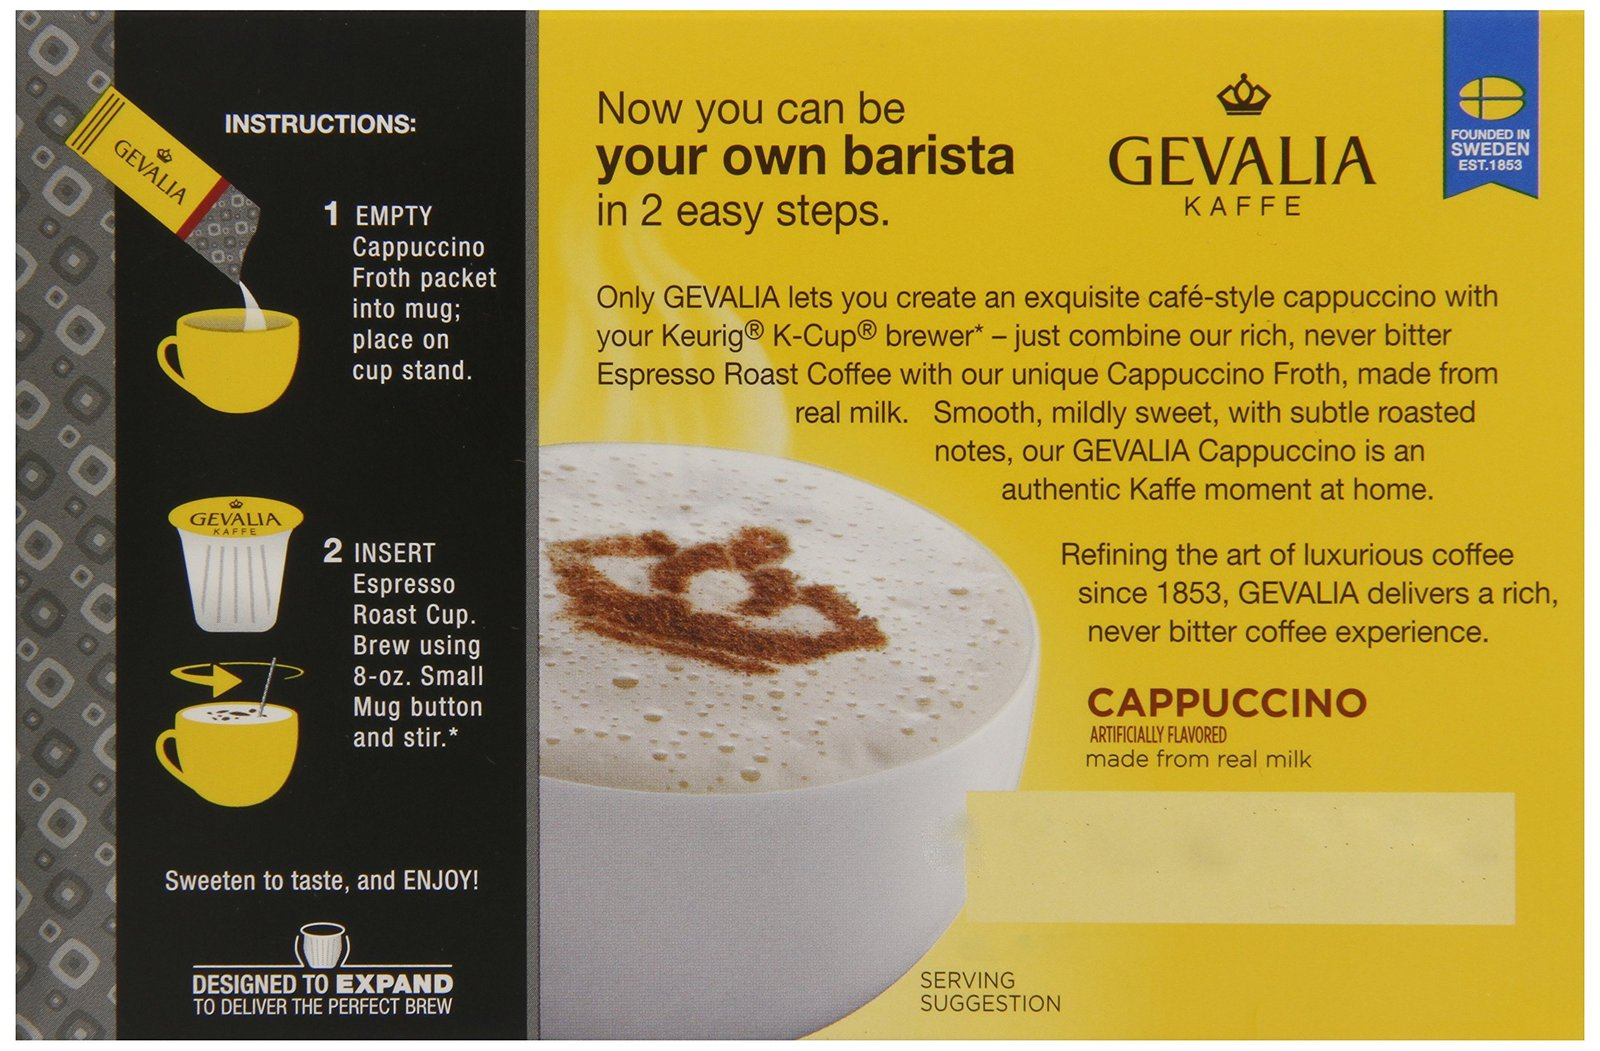 Gevalia Kaffe, 2-Step K-Cup & Froth Packets, 6 Count, 5.6oz Box (Pack of 3) (...